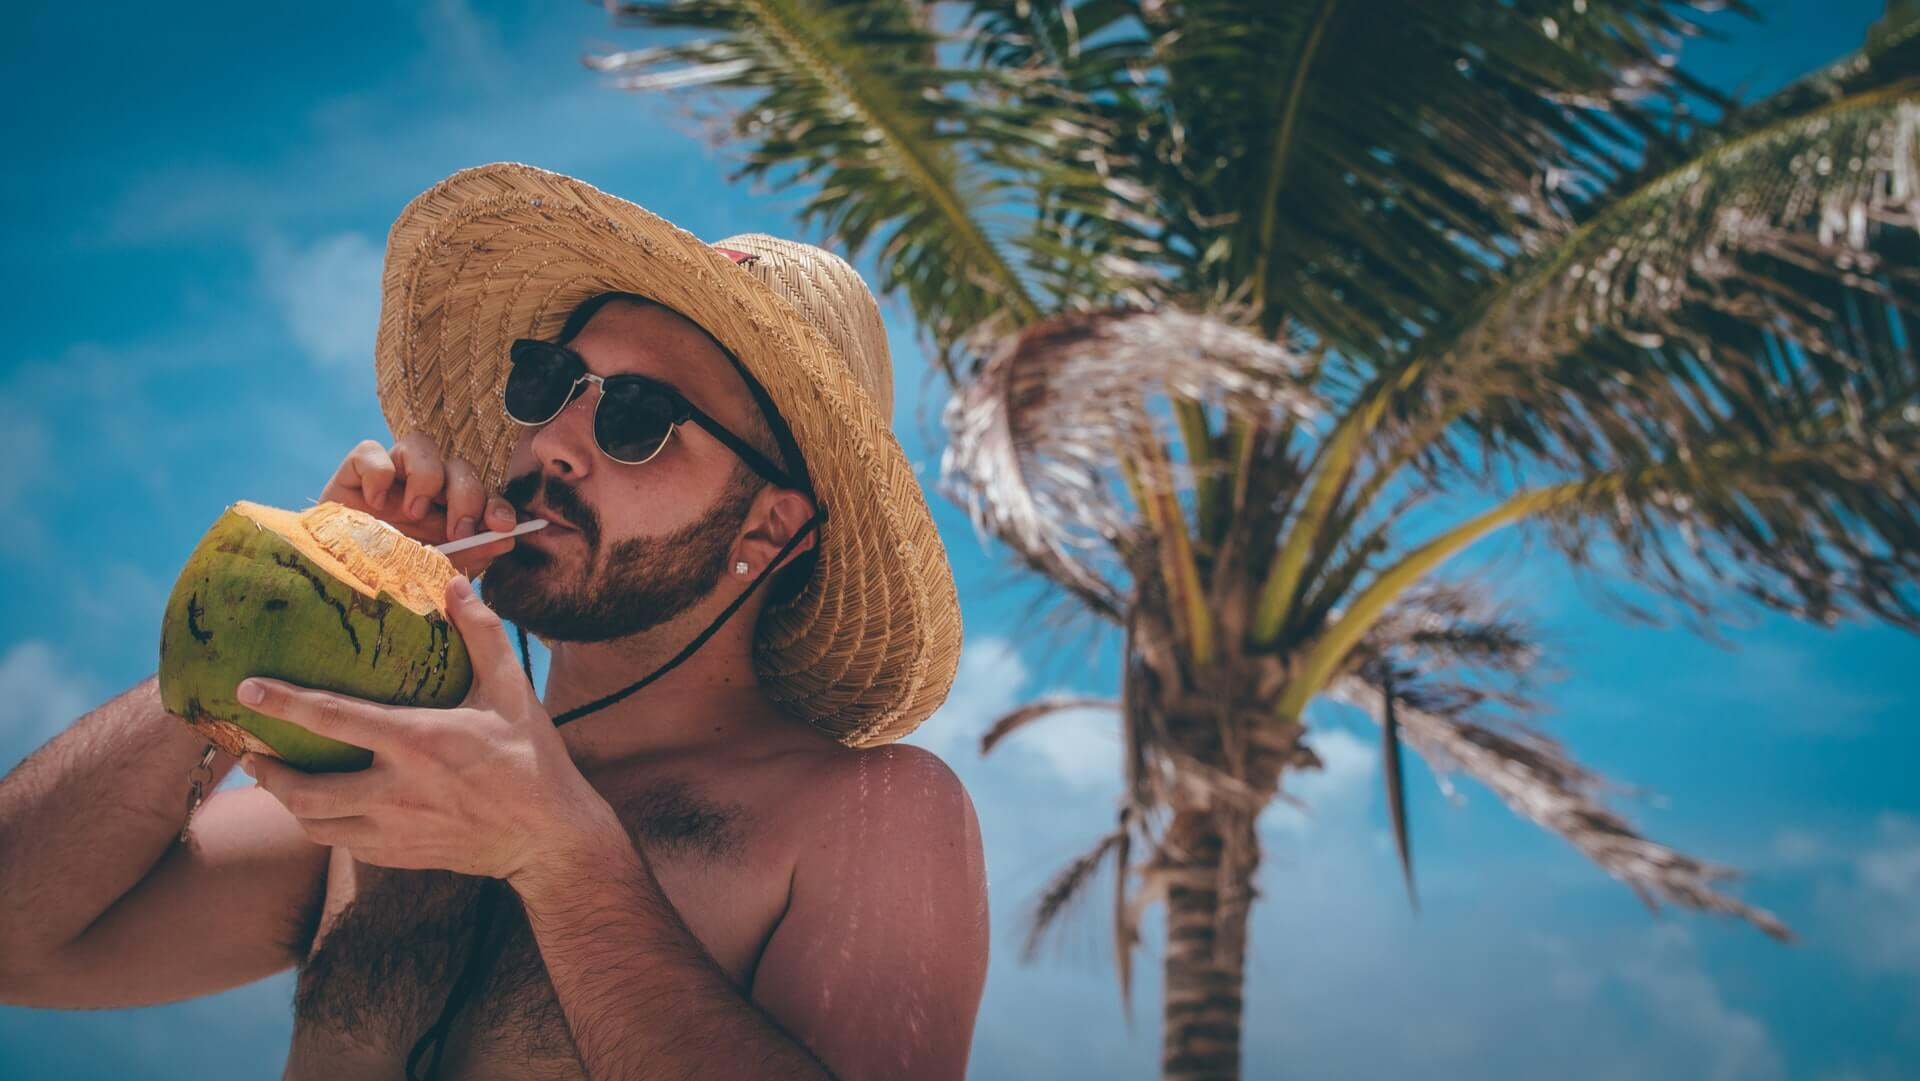 A man on vacation on a tropical island drinks from a coconut